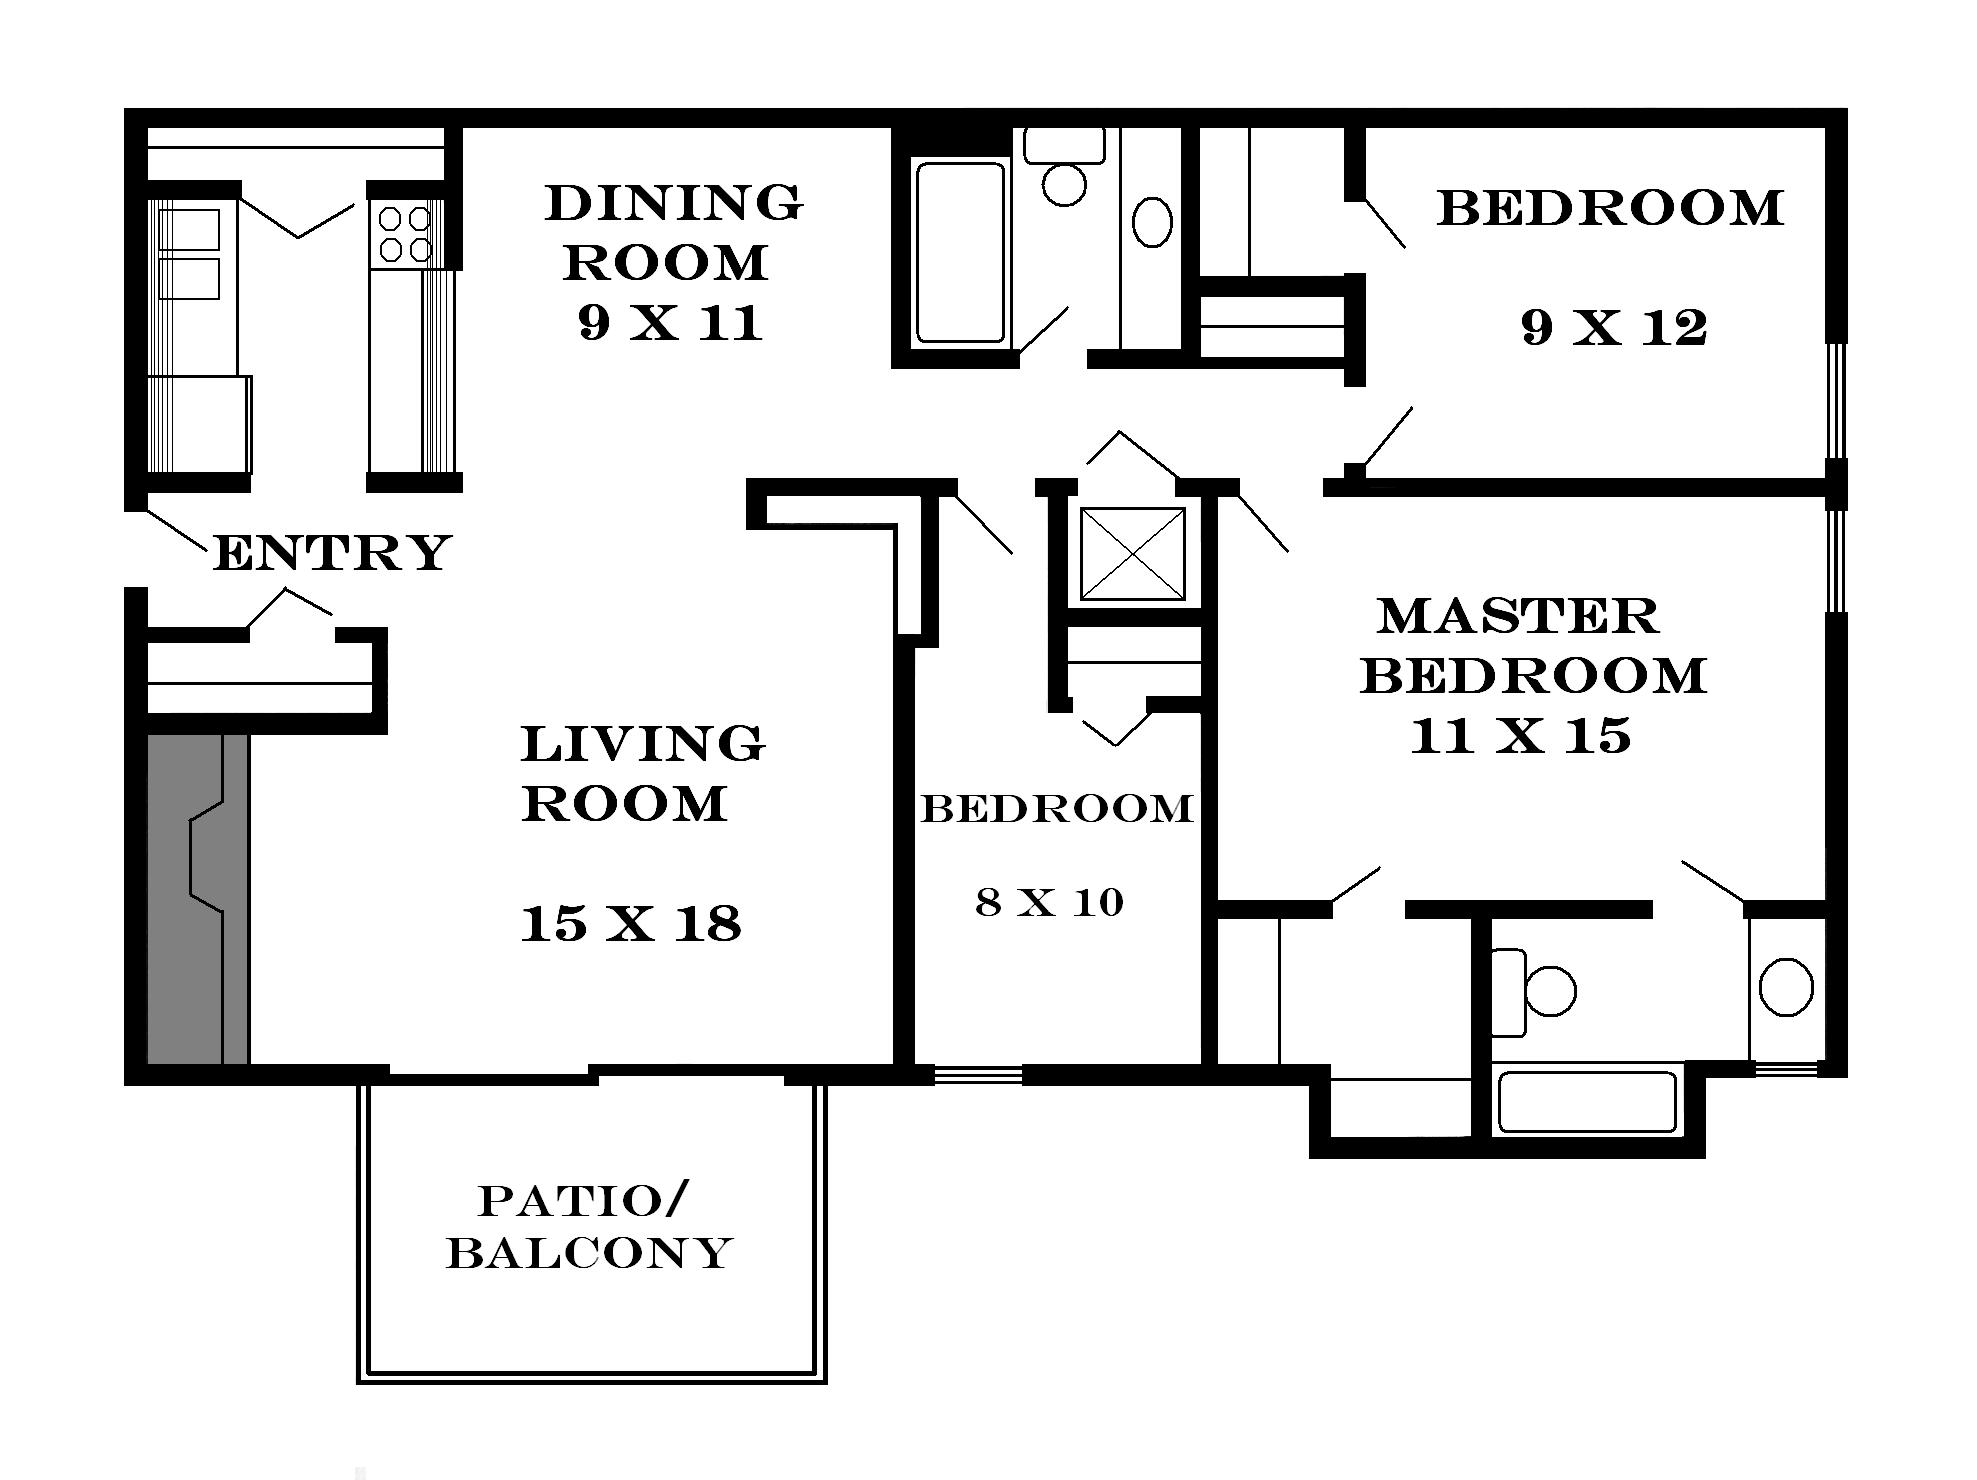 Typical Bedroom Wiring Diagram